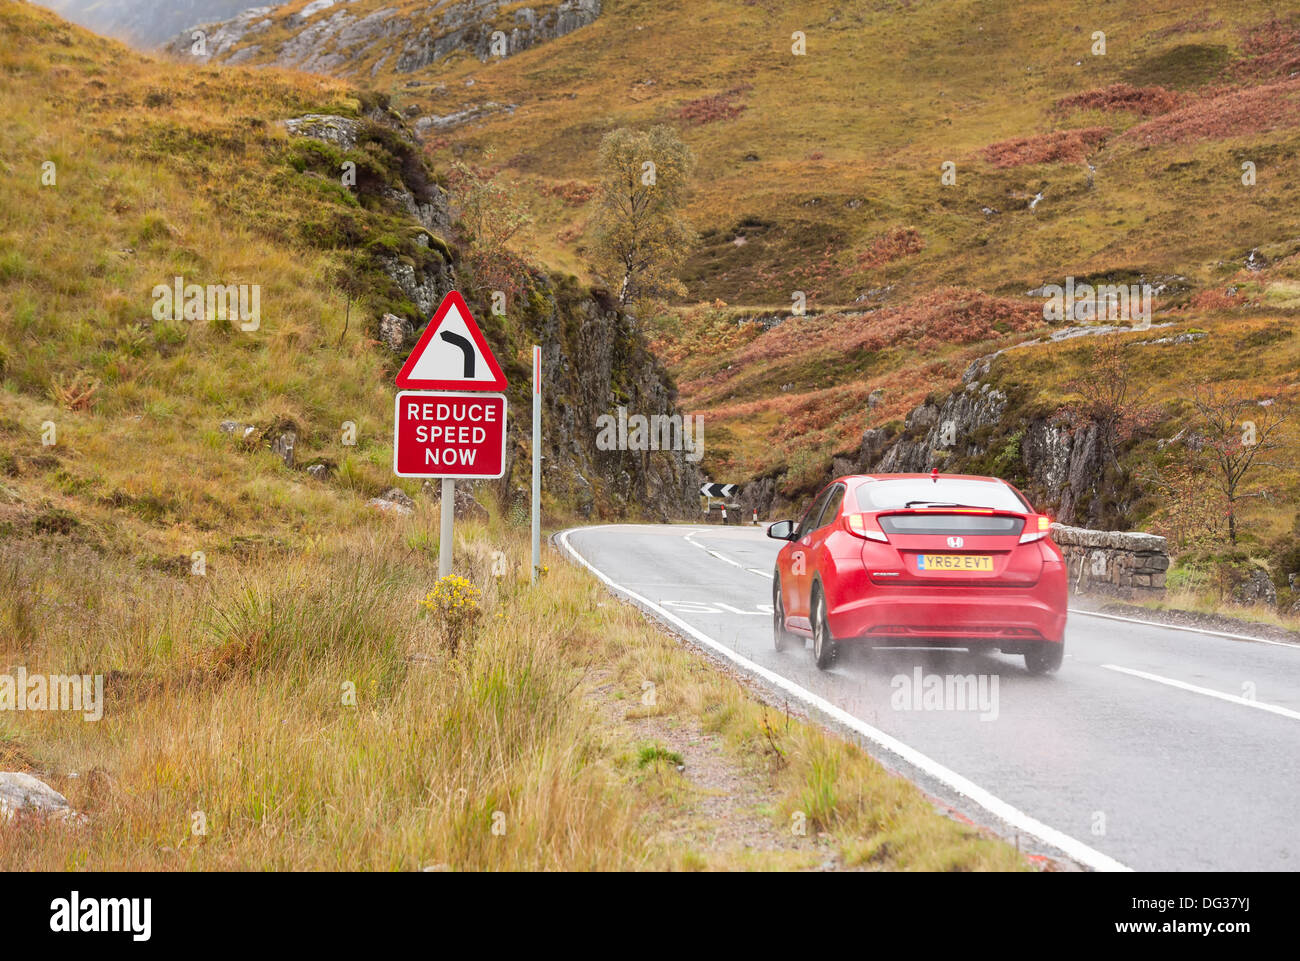 A car braking hard on the wet road conditions at a reduce speed now sign on the A82 at glencoe in the scottish highlands - Stock Image